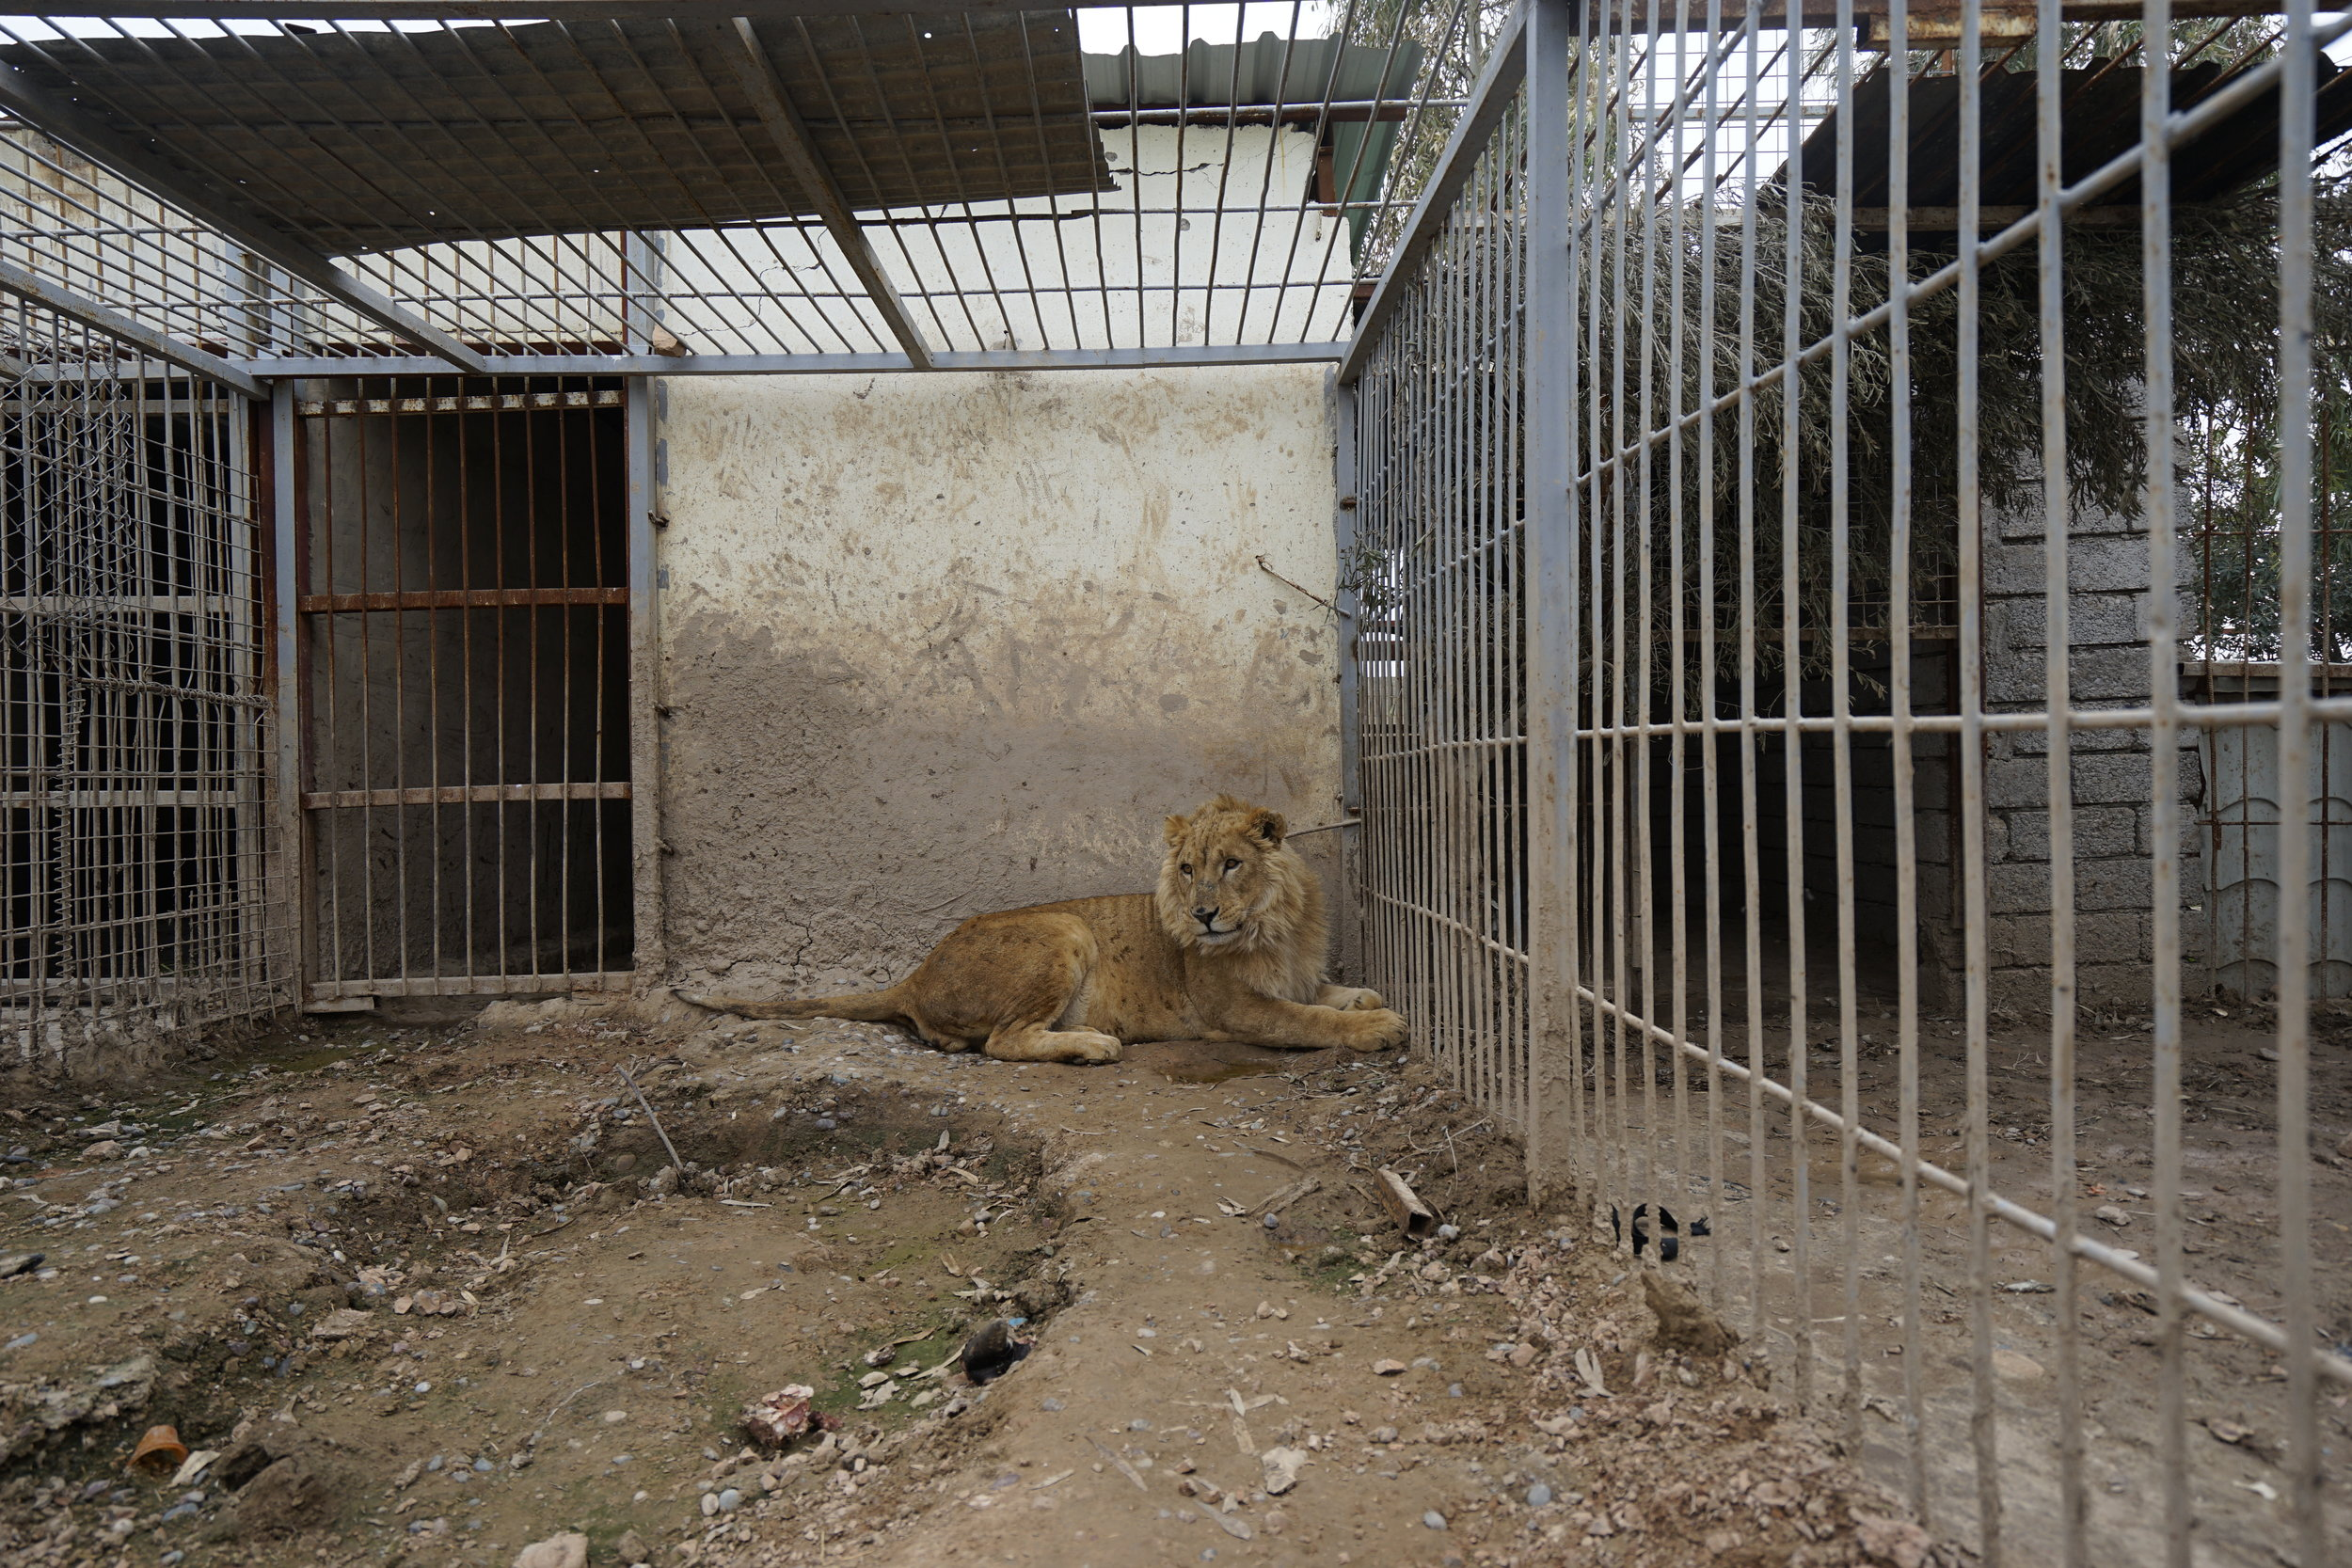 Simba the lion was found in the abandoned Mosul Zoo. Photo by Four Paws.